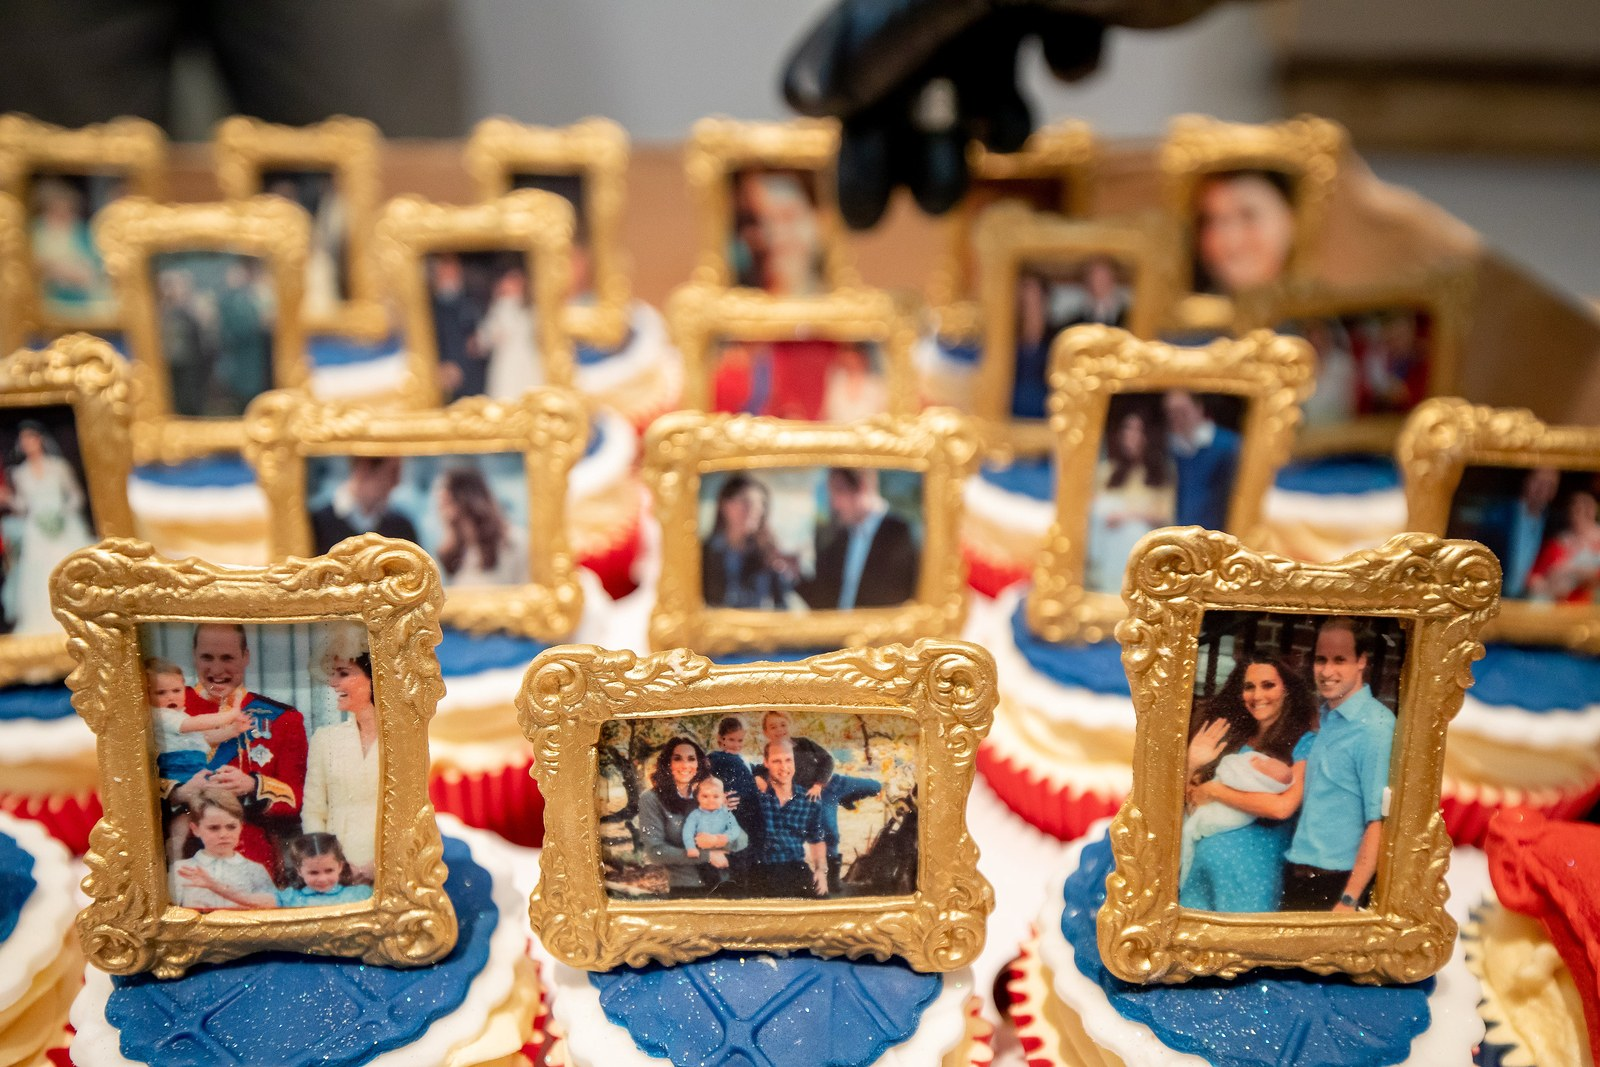 Cupcake decorations of Kate Middleton and Prince William